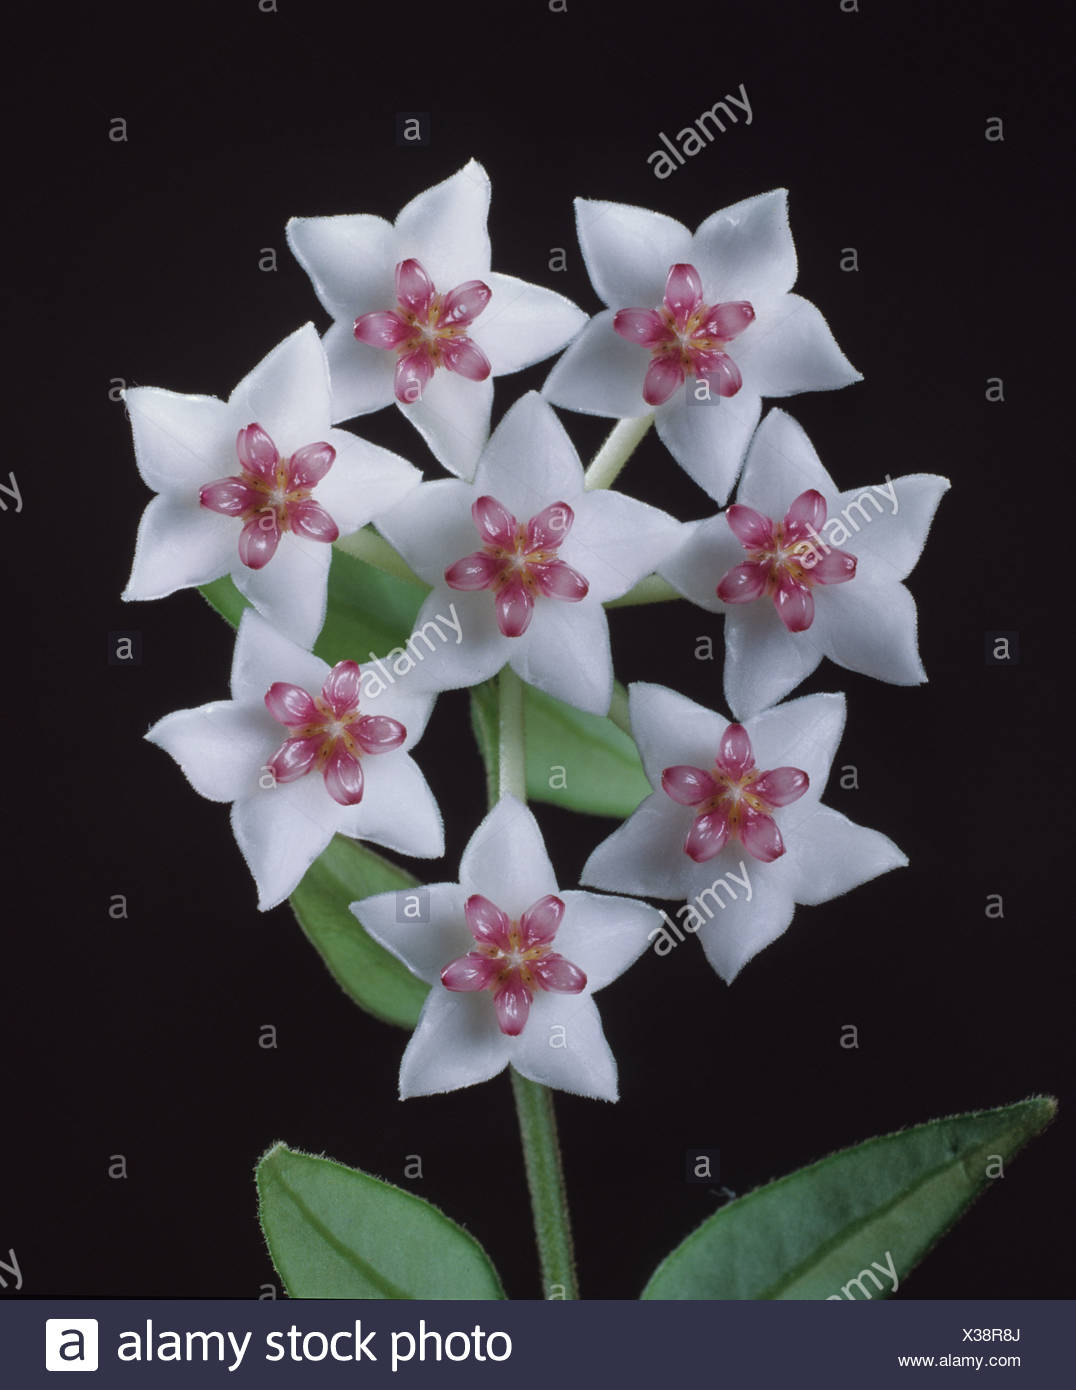 Hoya Bella Flower Plant Stock Photos Hoya Bella Flower Plant Stock